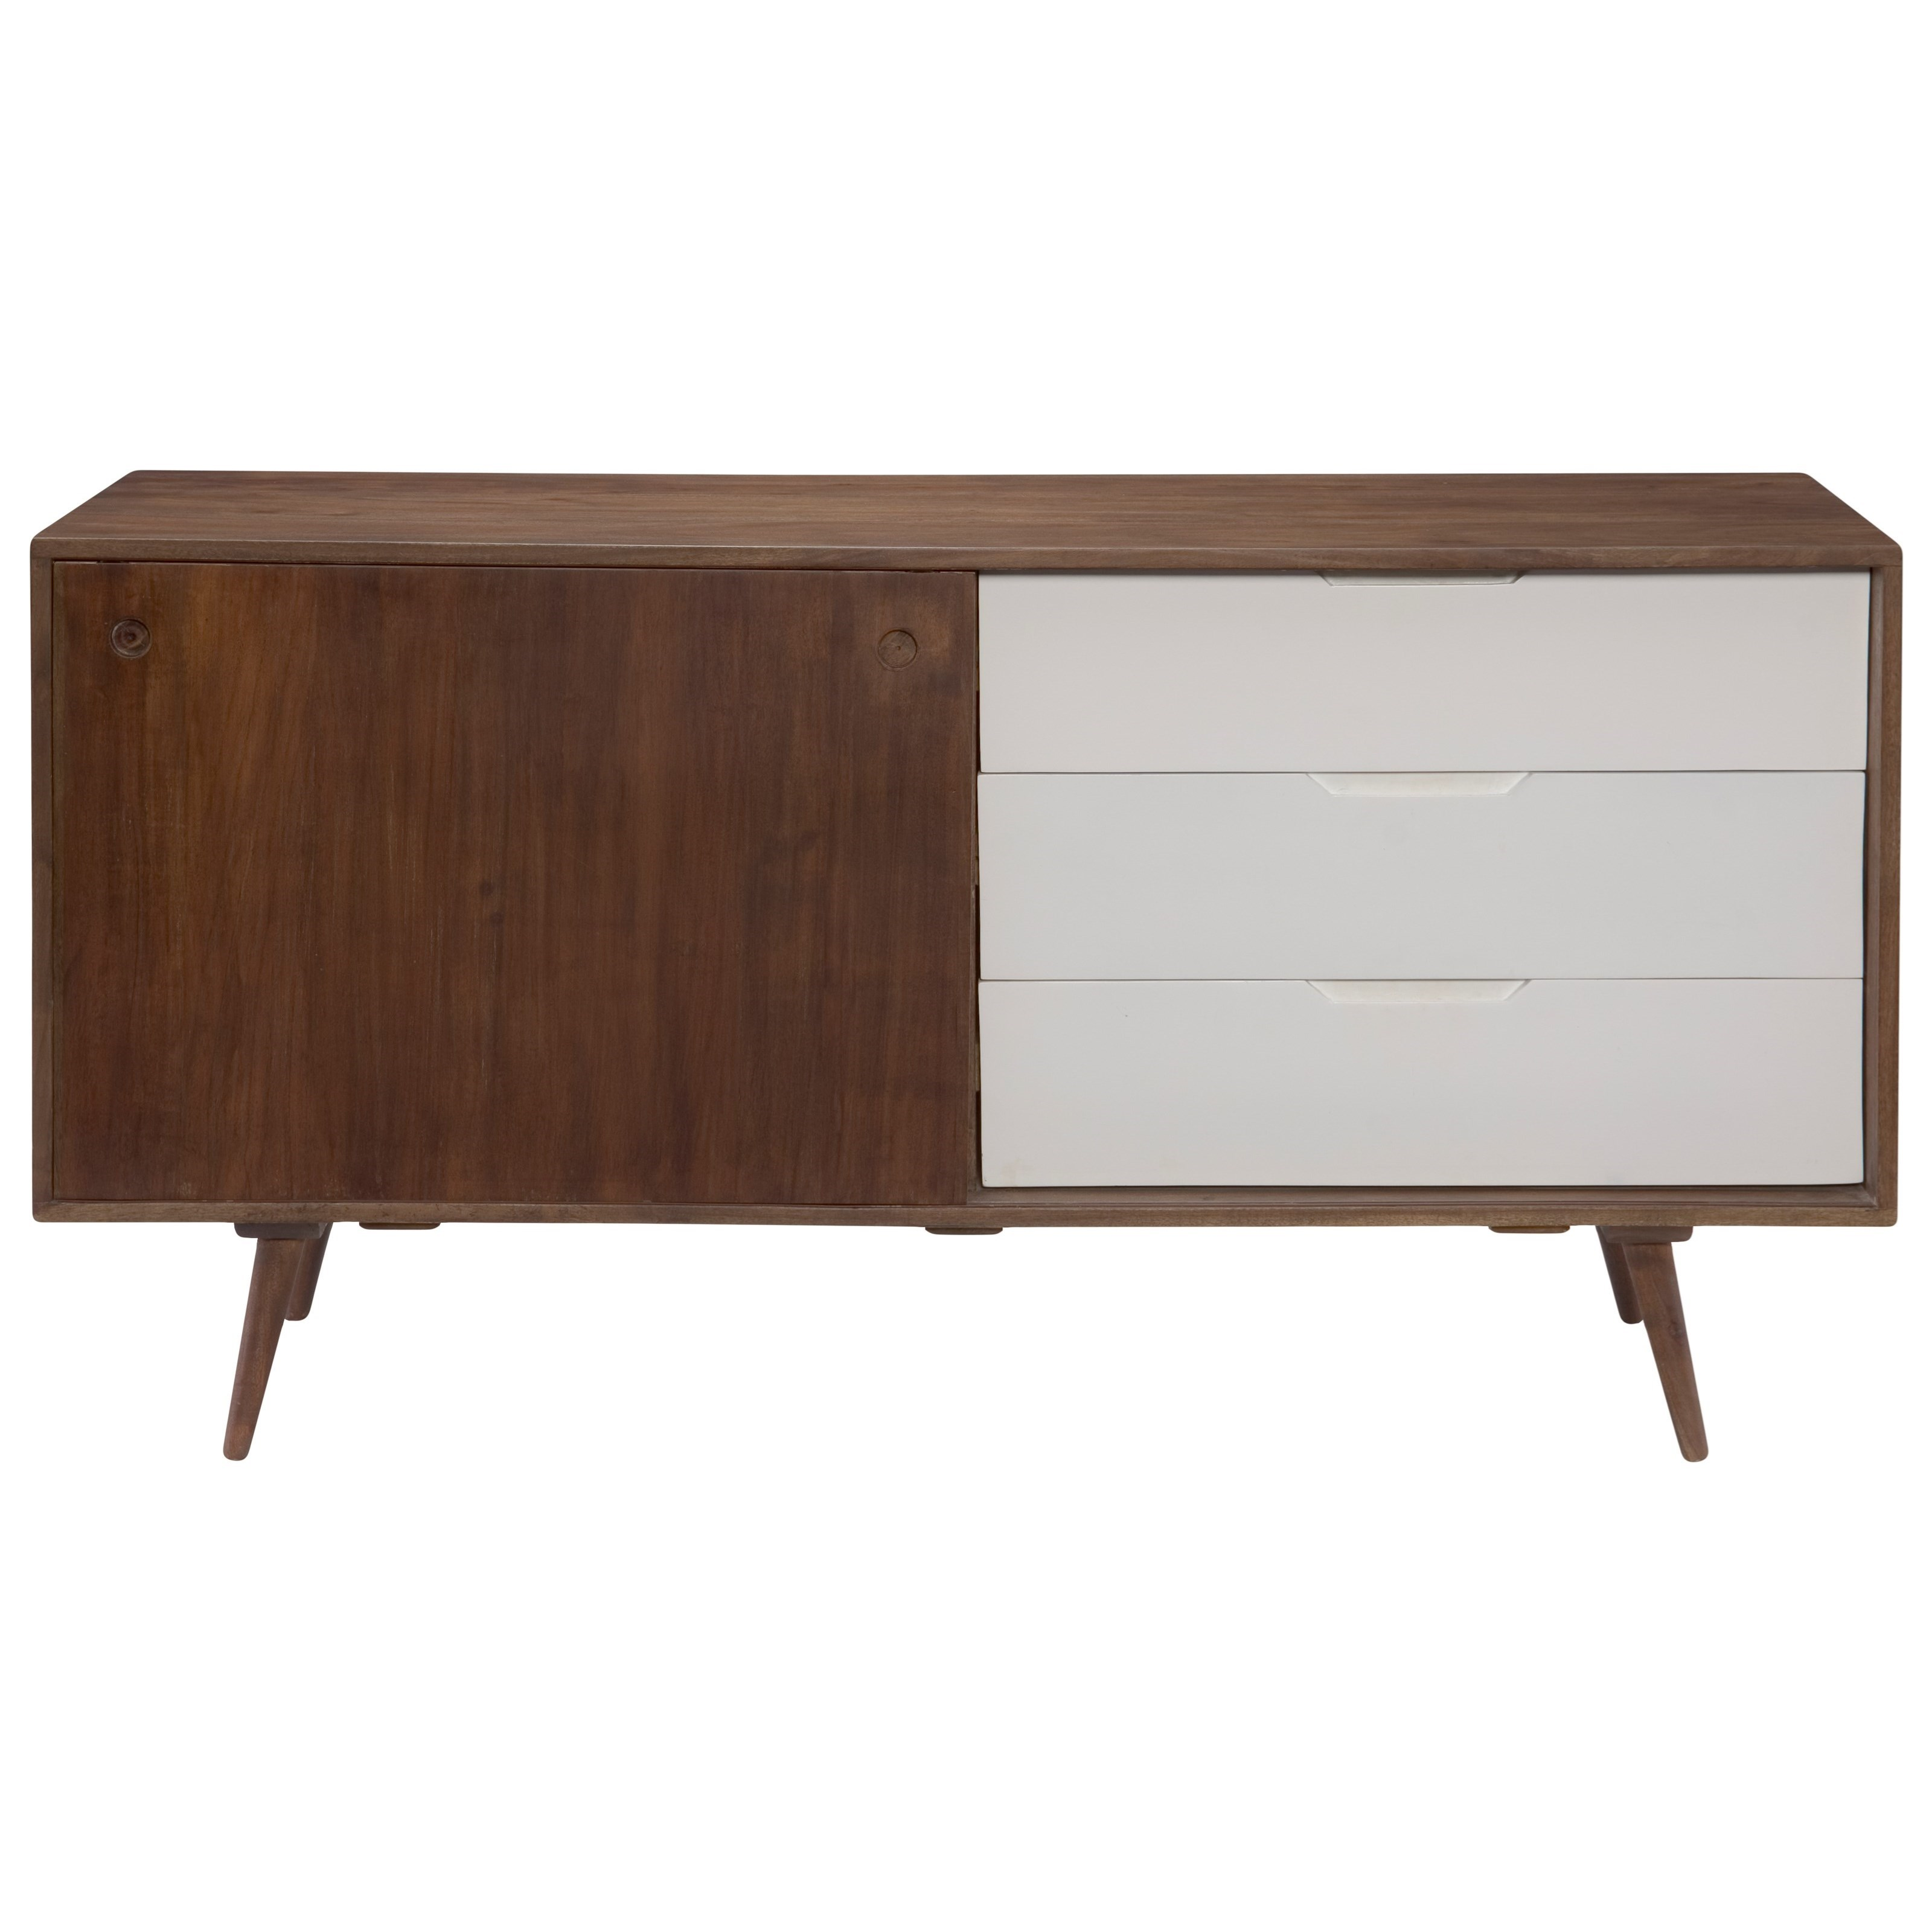 Blossom Sideboard with 3 Drawers by Moe's Home Collection at Stoney Creek Furniture